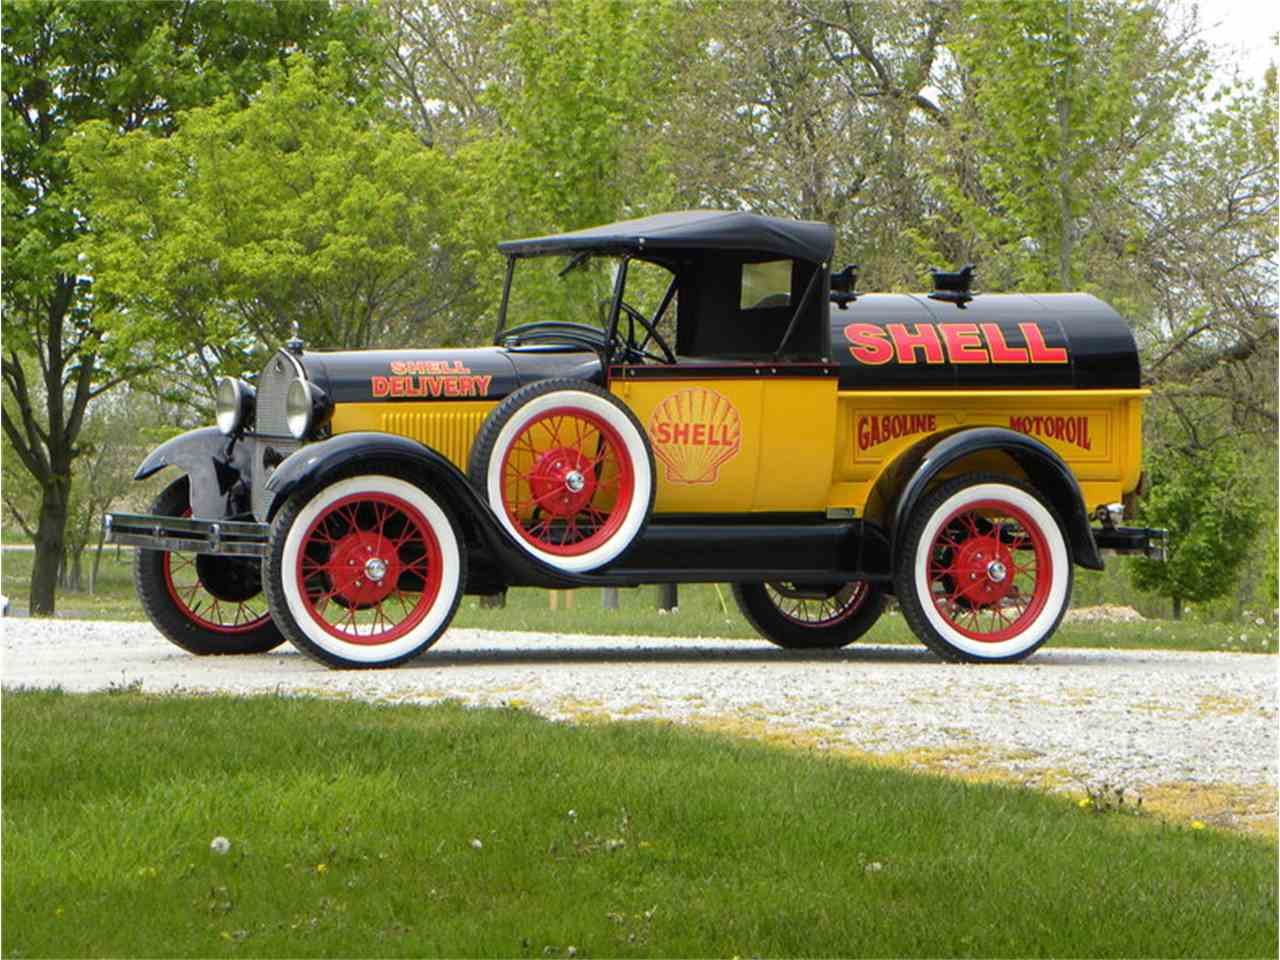 Large Picture of '29 Ford Model A Roadster Pickup Tribute Shell Oil Tanker Offered by Volo Auto Museum - LT8A